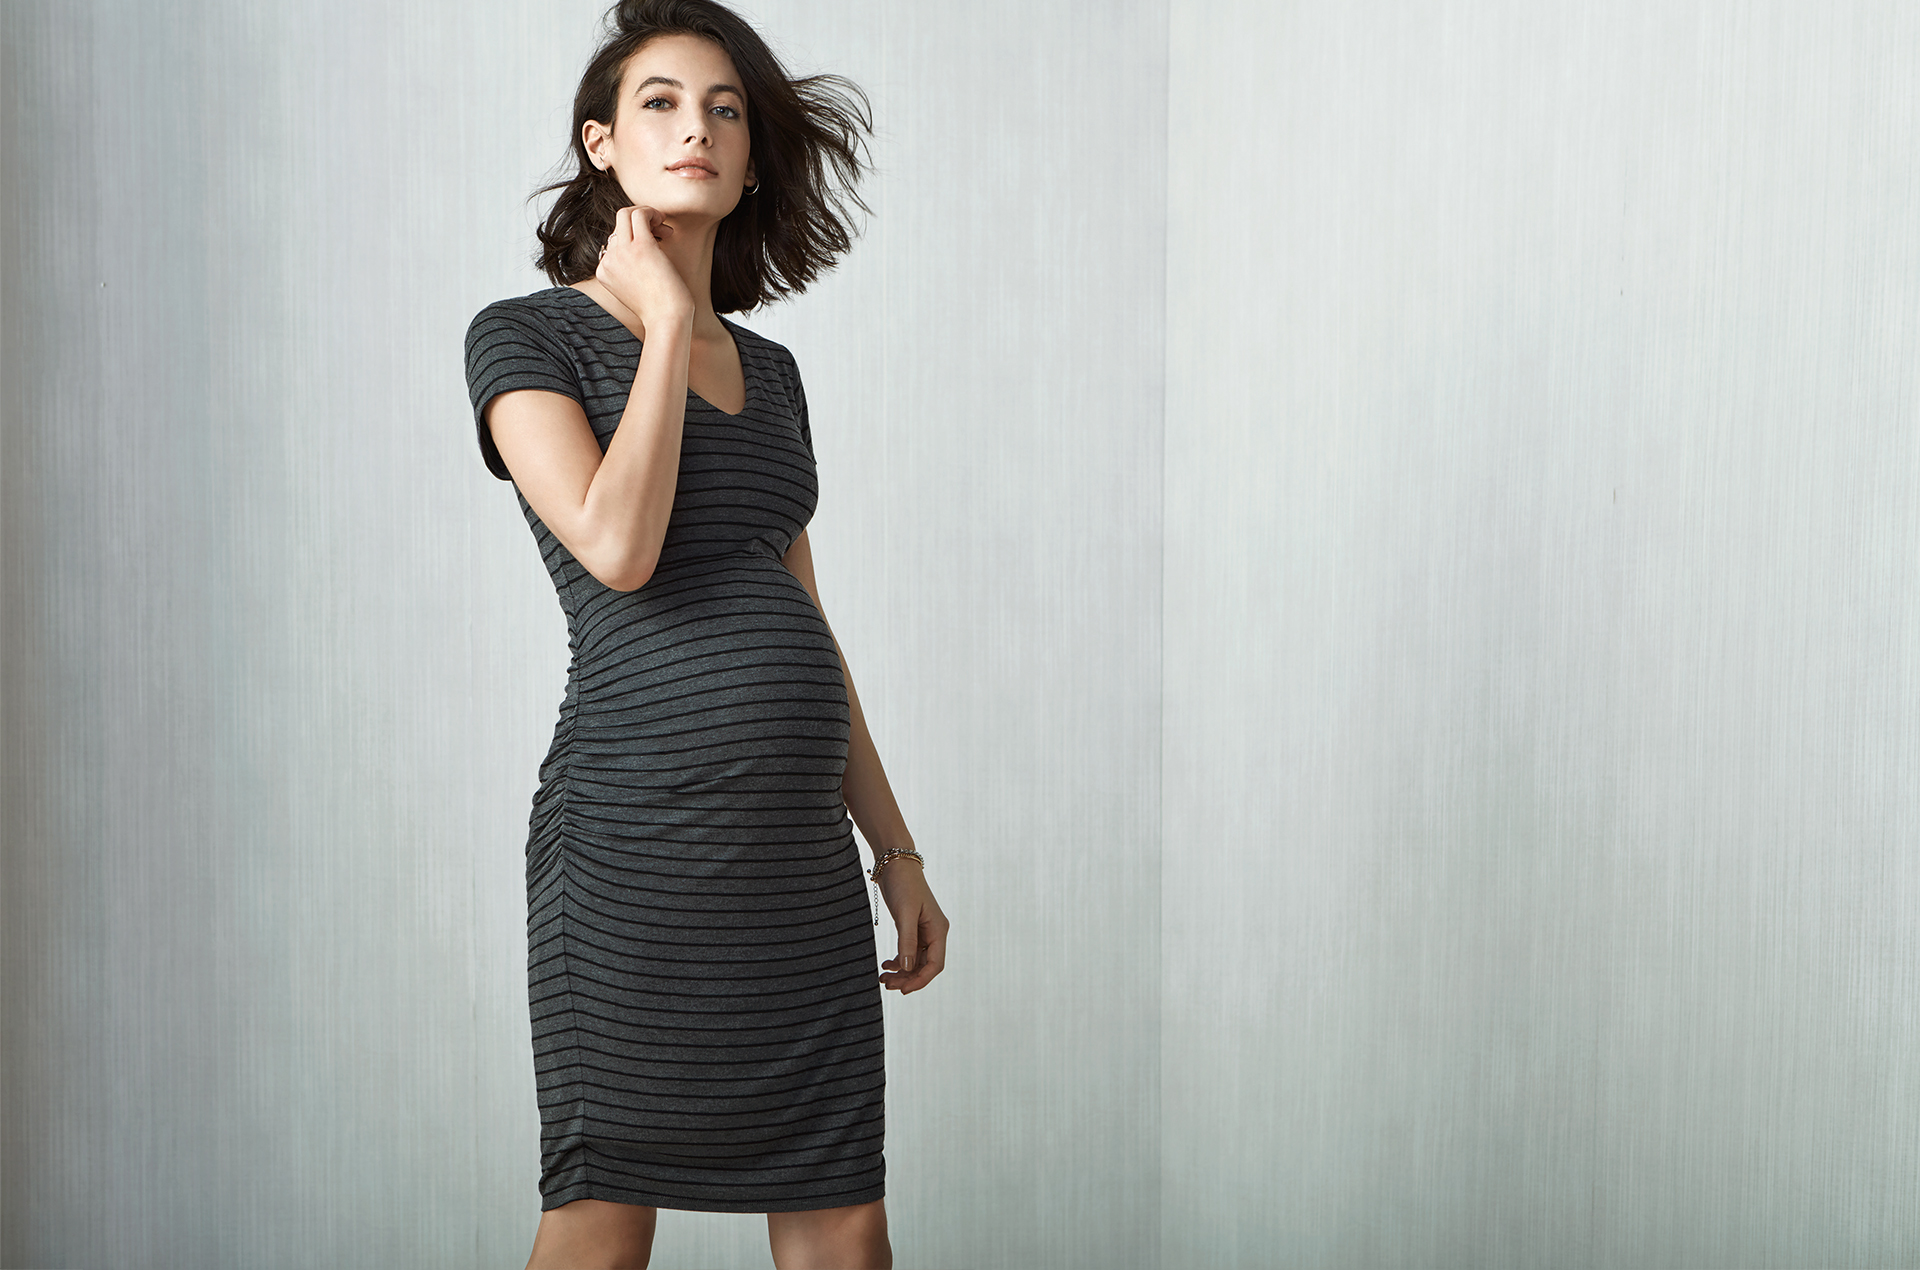 Dress Code. Statement knits that contour your shape flawlessly